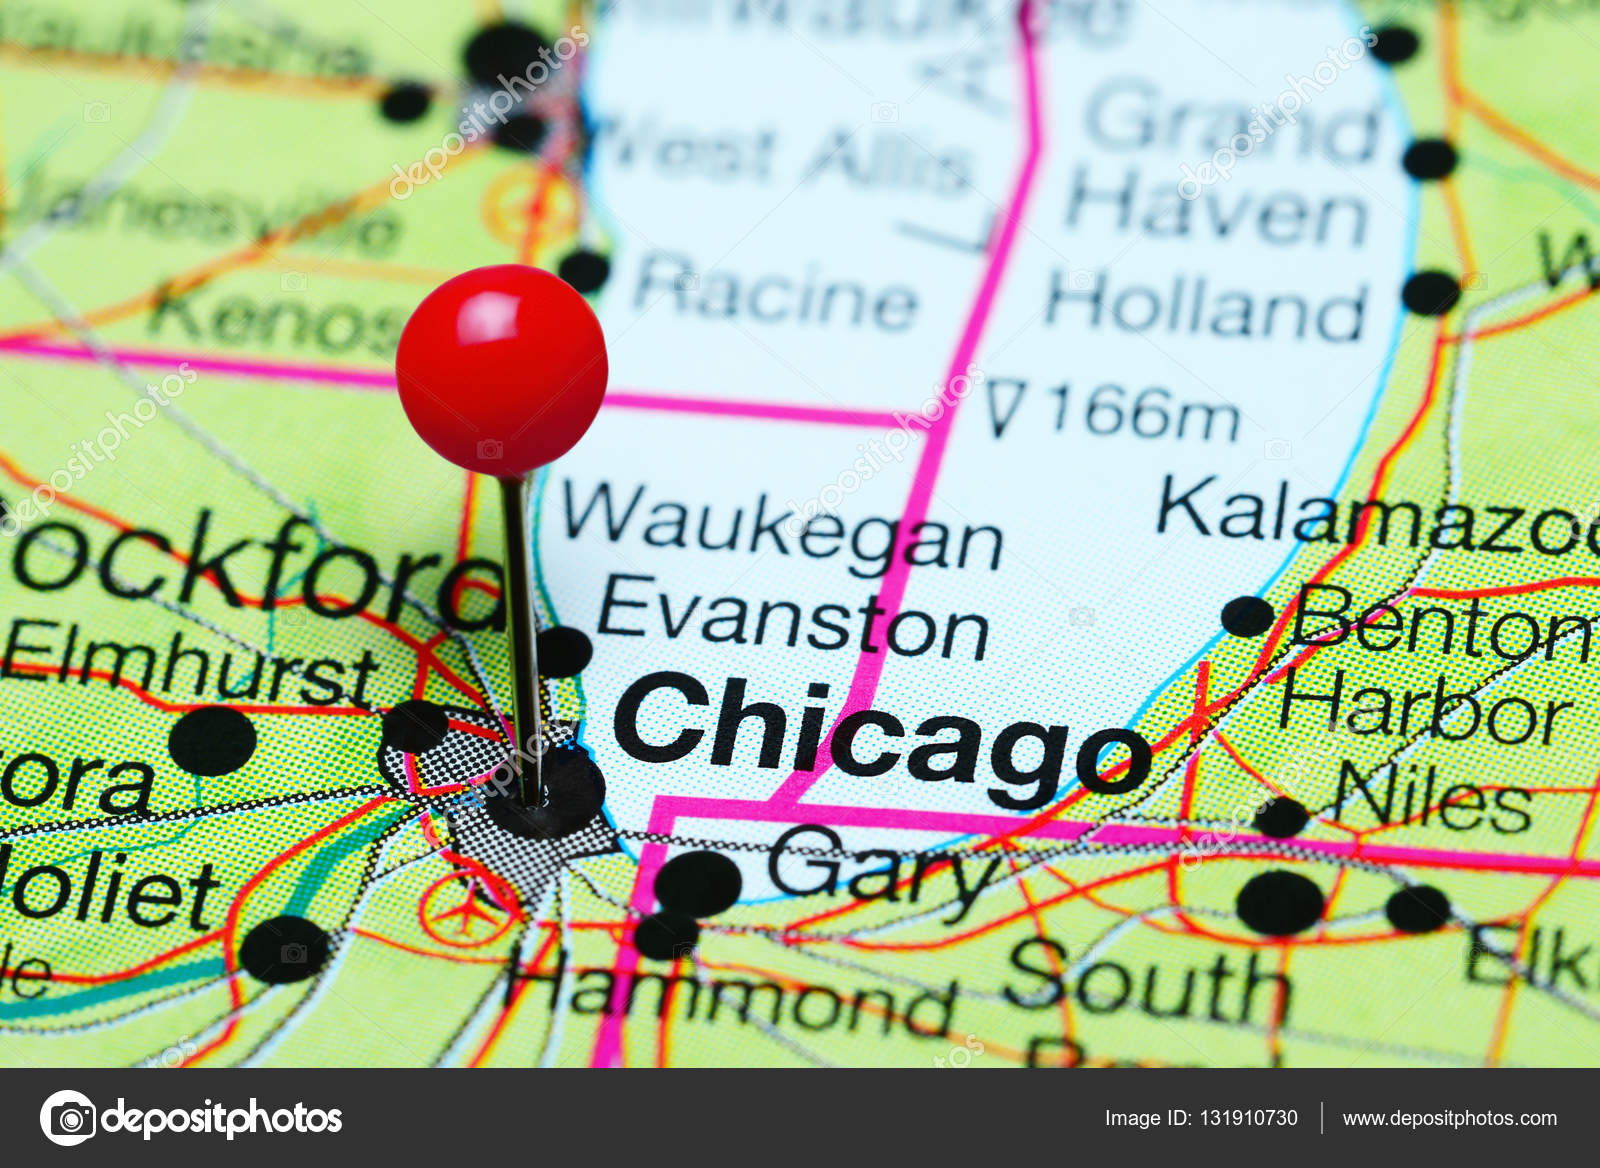 Chicago pinned on a map of Illinois USA Stock Photo dkphotos